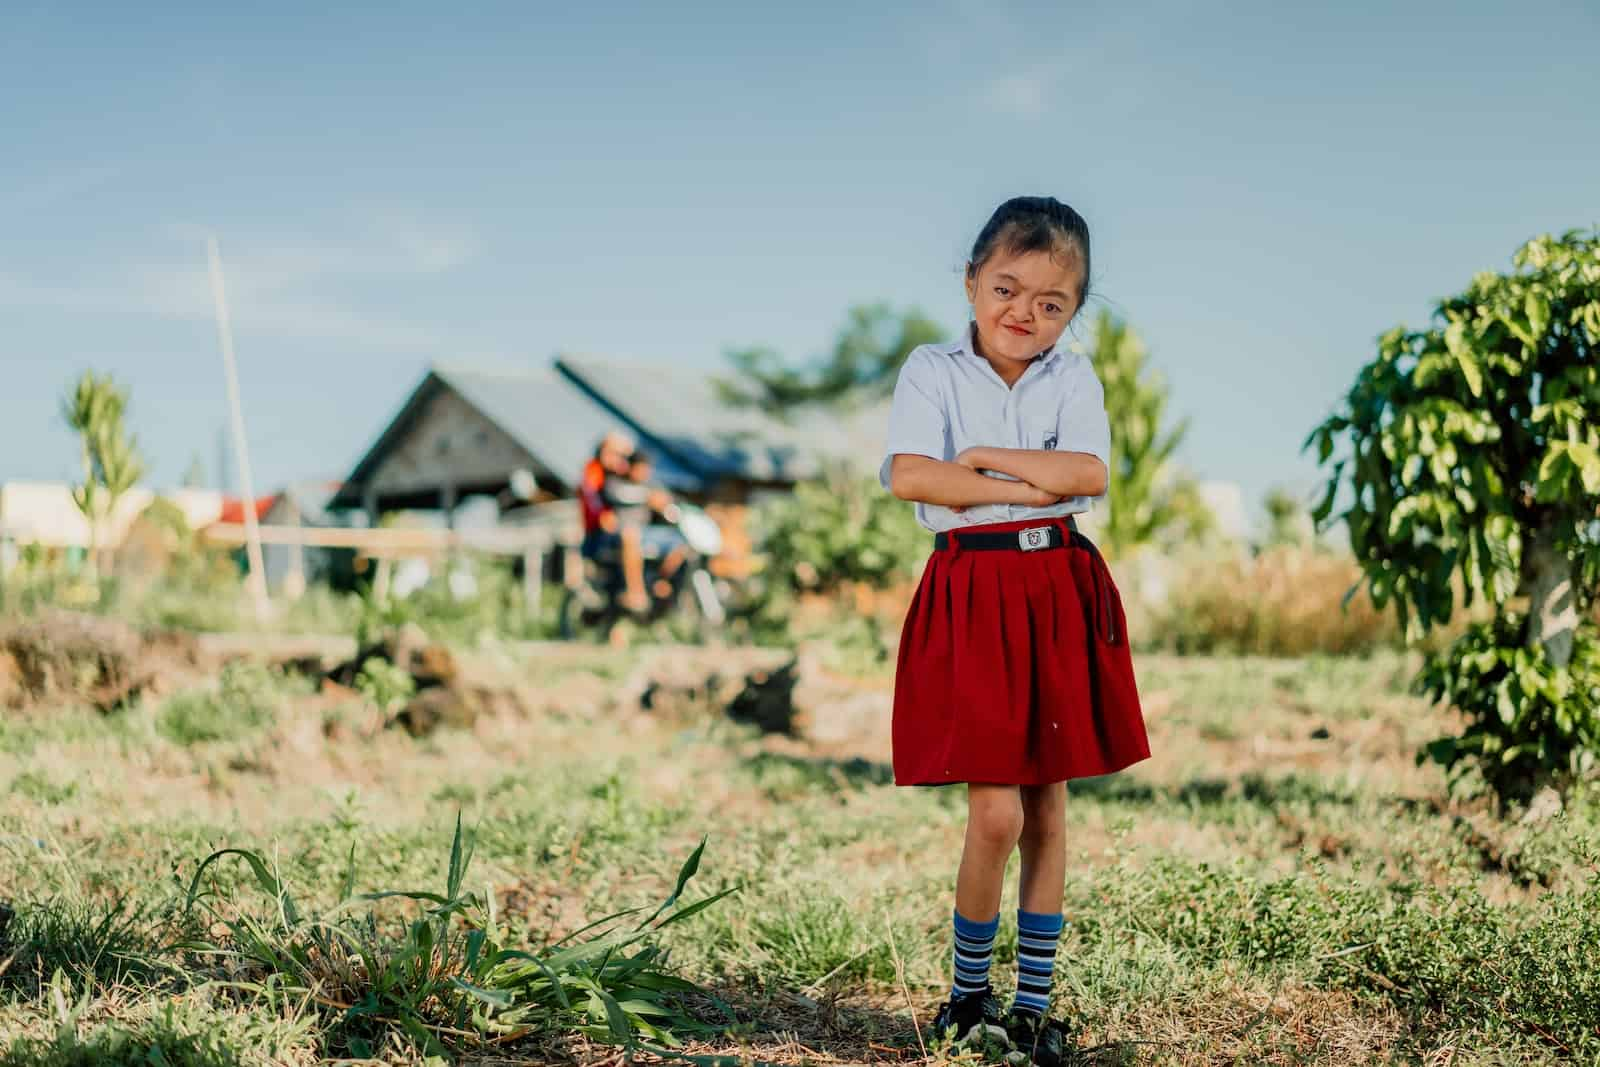 A photo of a girl with Apert Syndrome in a red and white school uniform stands in front of a house, with her arms crossed in front of her.